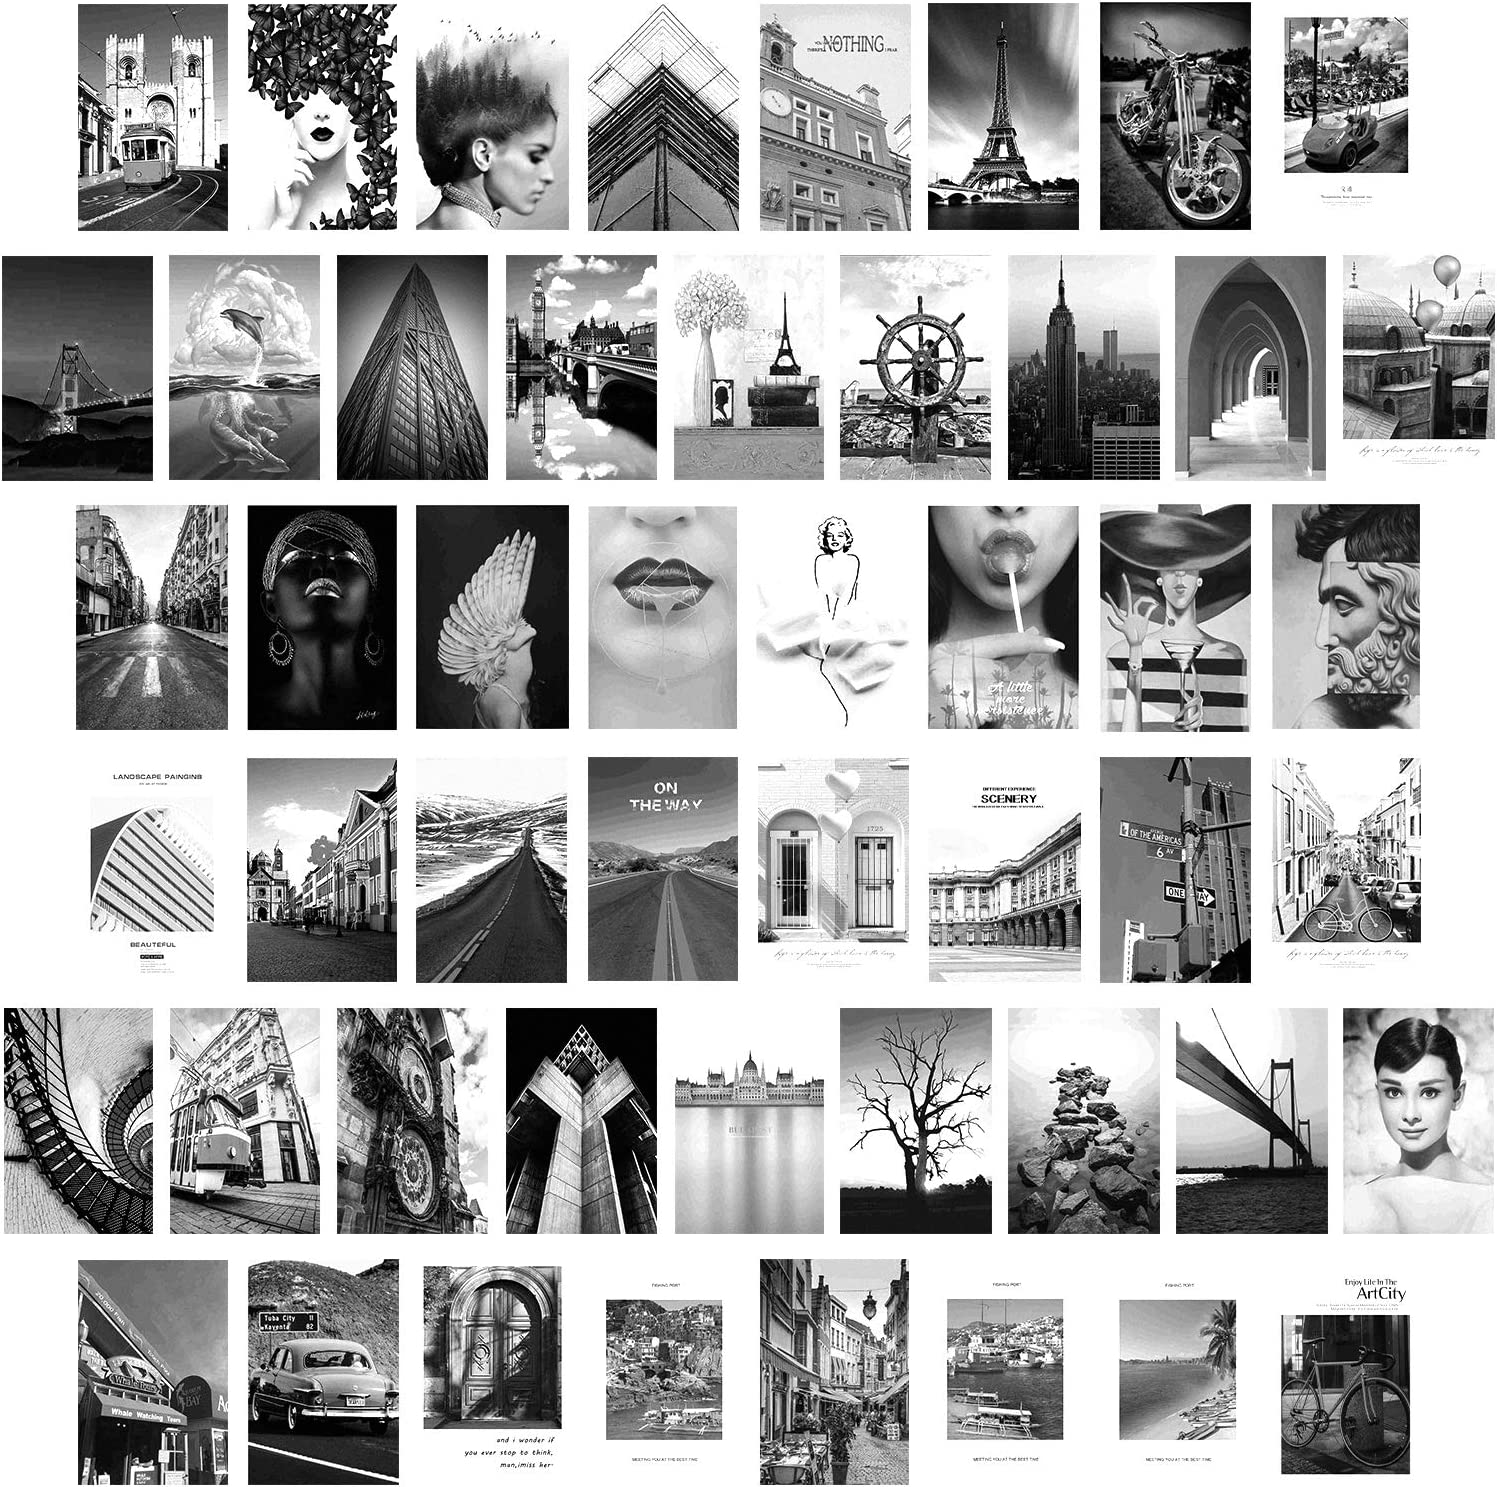 collage kit for wall aesthetic art boho room decor bedroom teen girls Women black and white Vsco Trendy cute photo things posters Indie Plants (50 Set 4x6 inch)